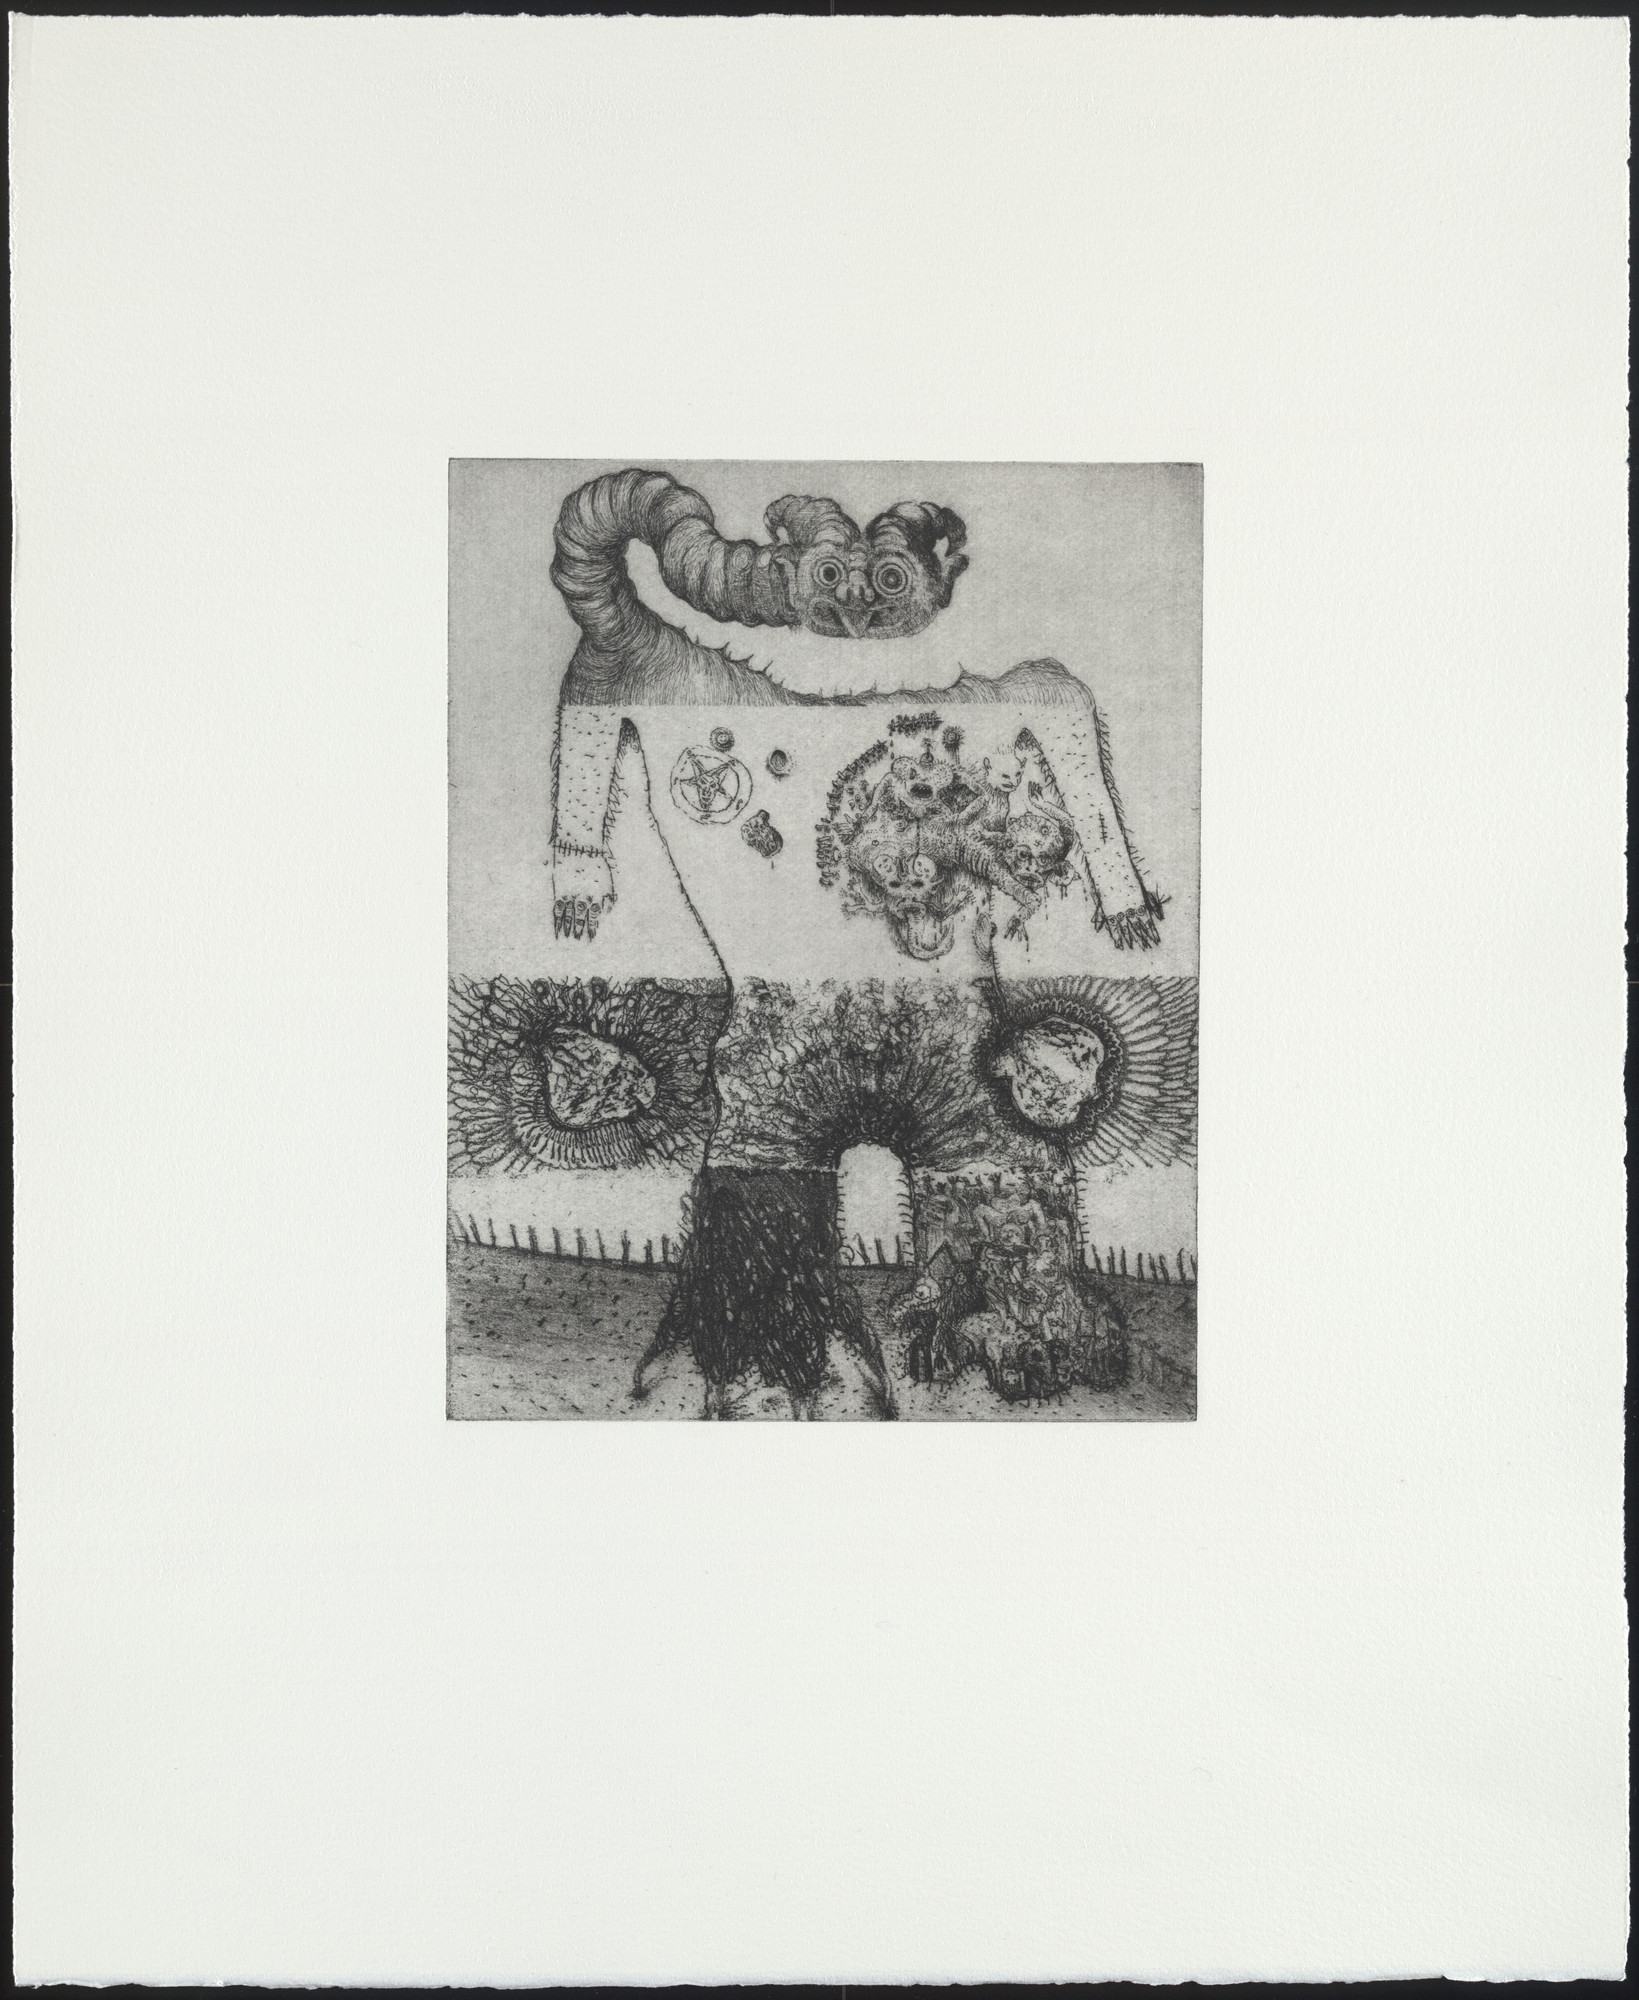 Dinos and Jake Chapman. Untitled, from the portfolio Exquisite Corpse. 2000. Etching. Plate: 9 1/16 × 7 1/16″ (23 × 18 cm). Publisher: The Paragon Press, London. Printer: Hope (Sufferance) Press, London. Edition: 30. The Museum of Modern Art. Roxanne H. Frank Fund